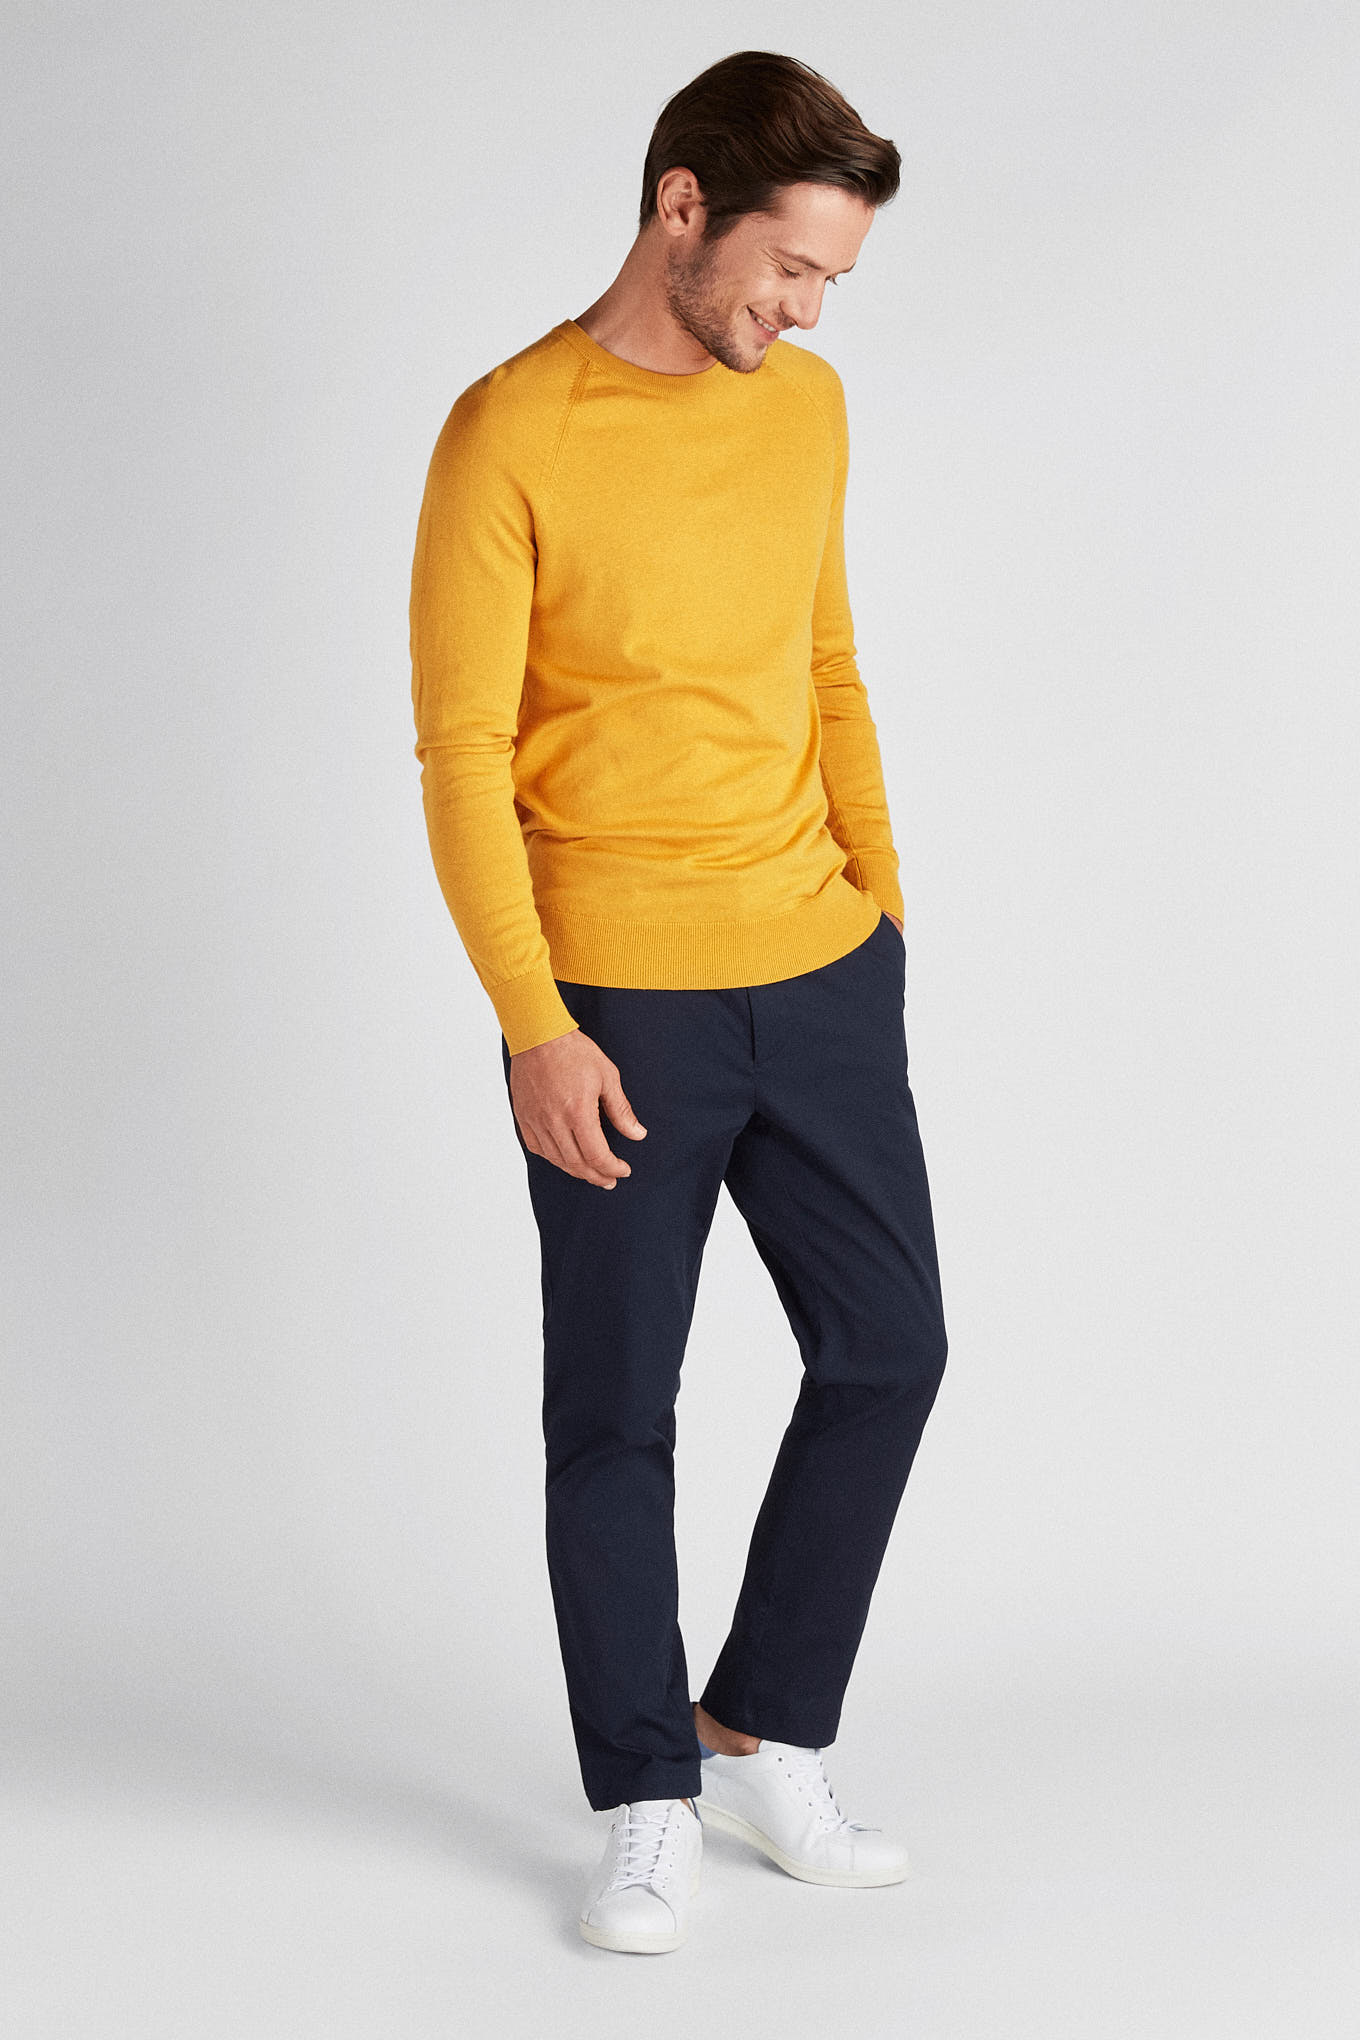 Sweater Yellow Casual Man